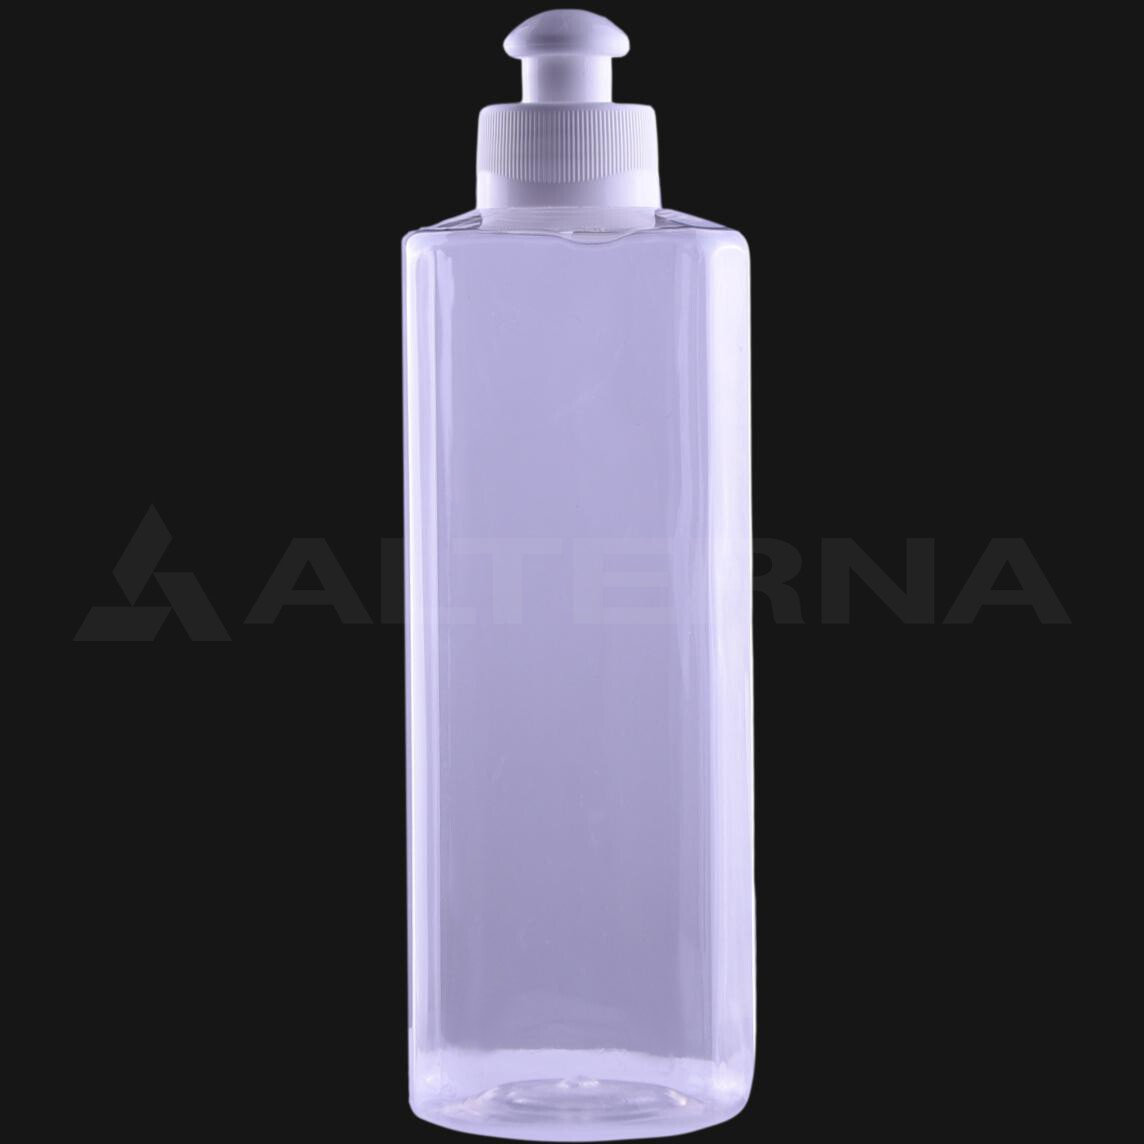 400 ml PET Square Bottle with 28 mm Push Pull Cap